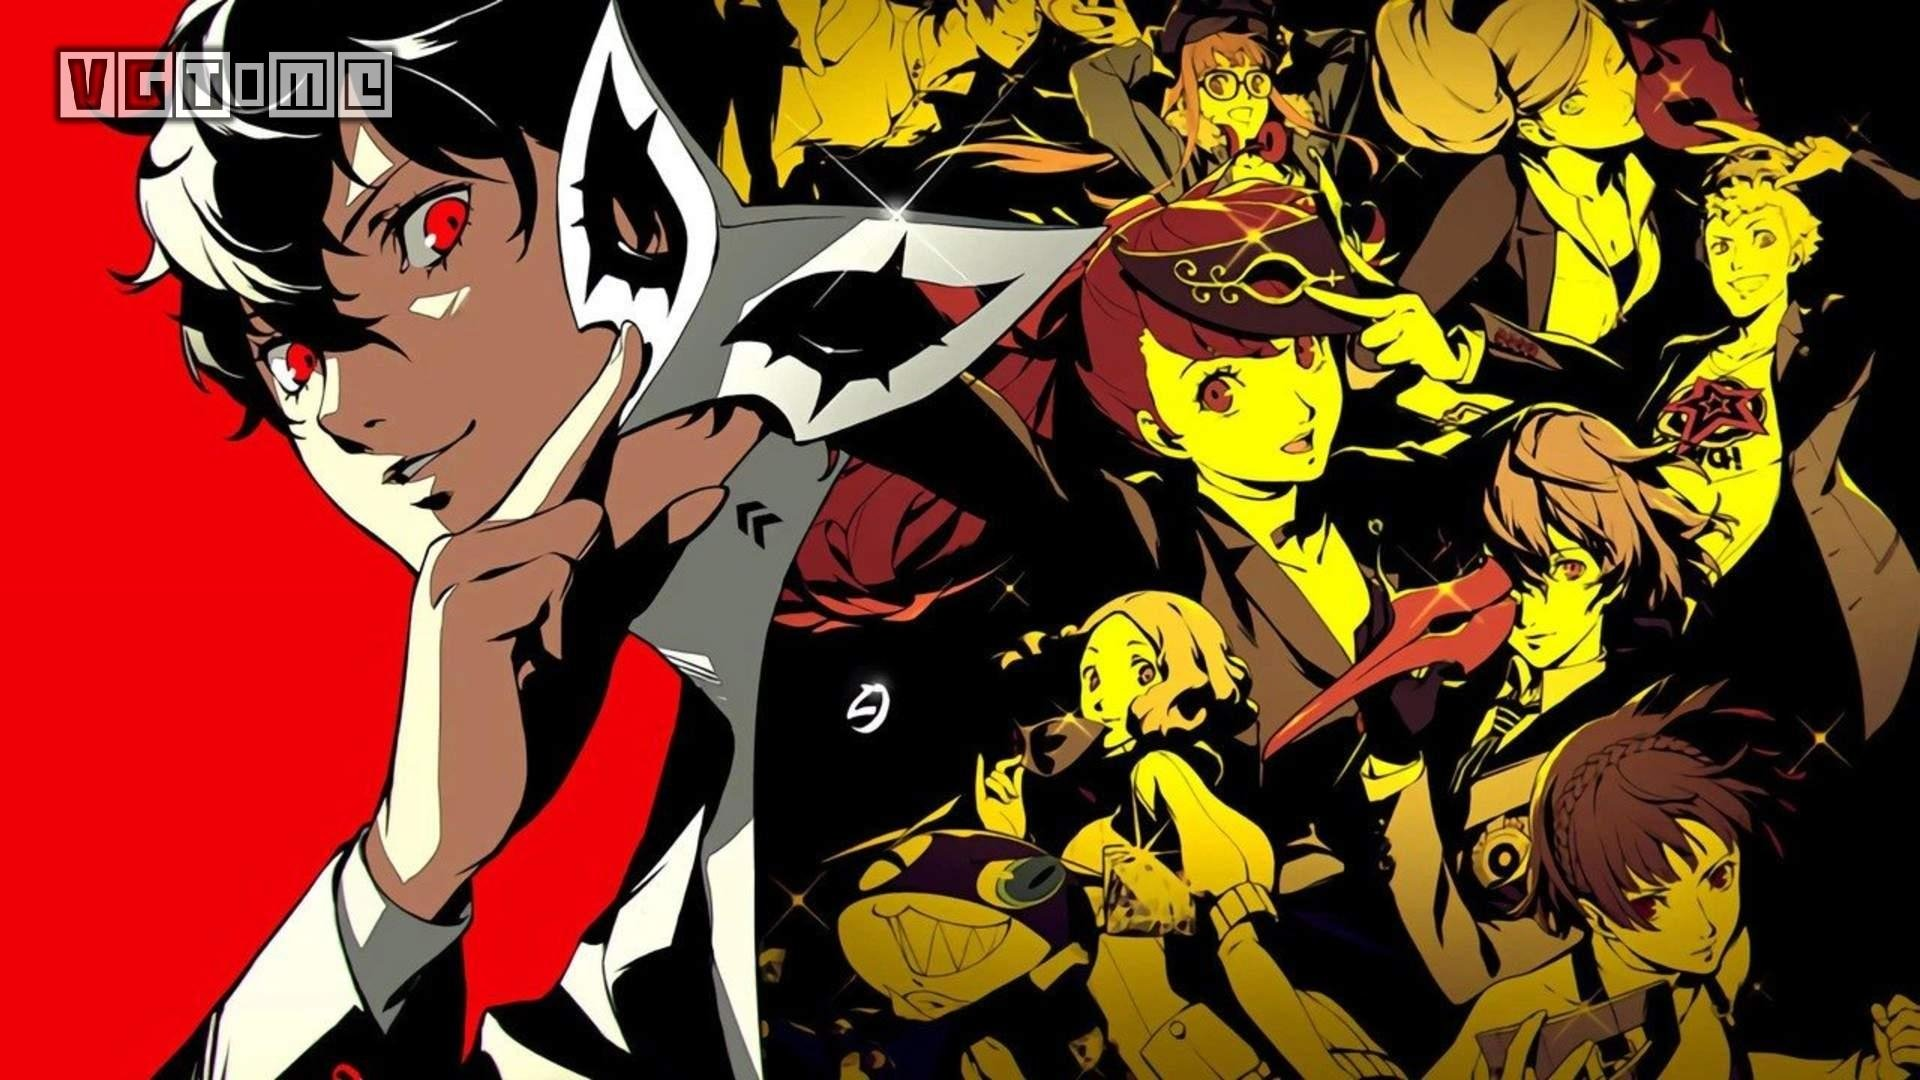 Persona 5 Royal Wallpaper For Pc